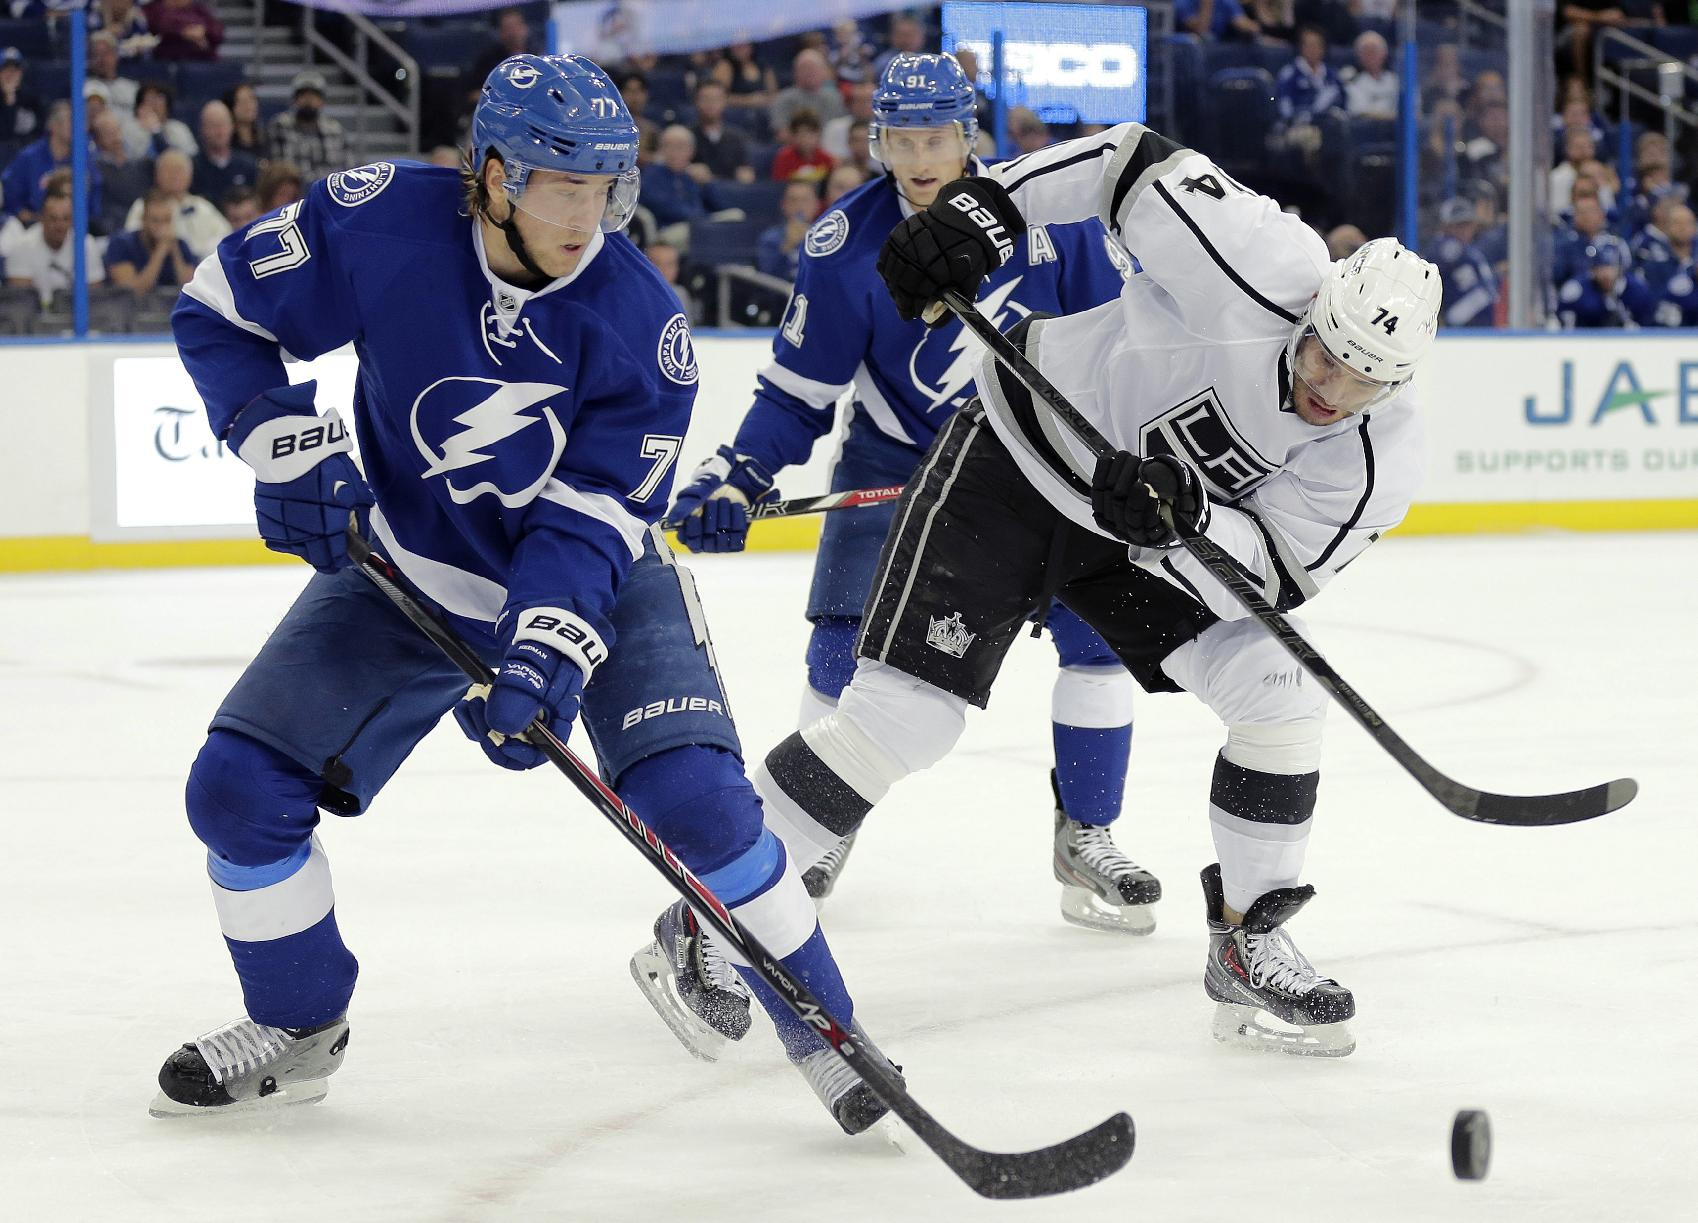 Tampa Bay Lightning defenseman Victor Hedman, left, of Sweden, battles with Los Angeles Kings center Dwight King, right, for the puck during the first period of an NHL hockey game Tuesday, Oct. 15, 2013, in Tampa, Fla